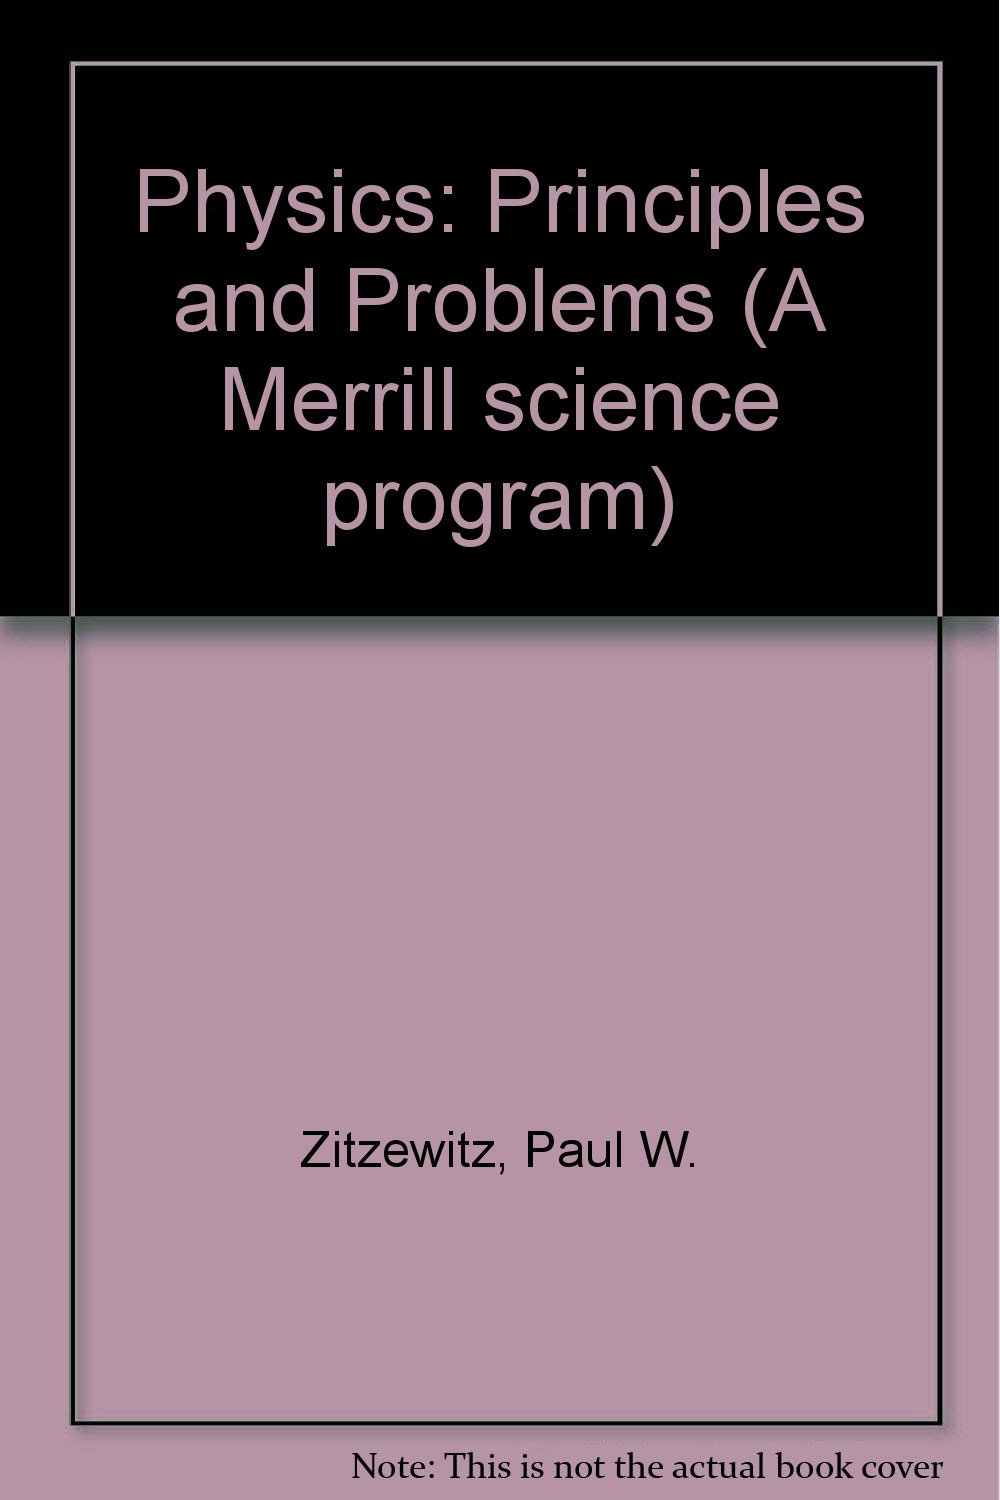 Buy Physics: Principles and Problems (A Merrill science program) Book  Online at Low Prices in India | Physics: Principles and Problems (A Merrill  science ...